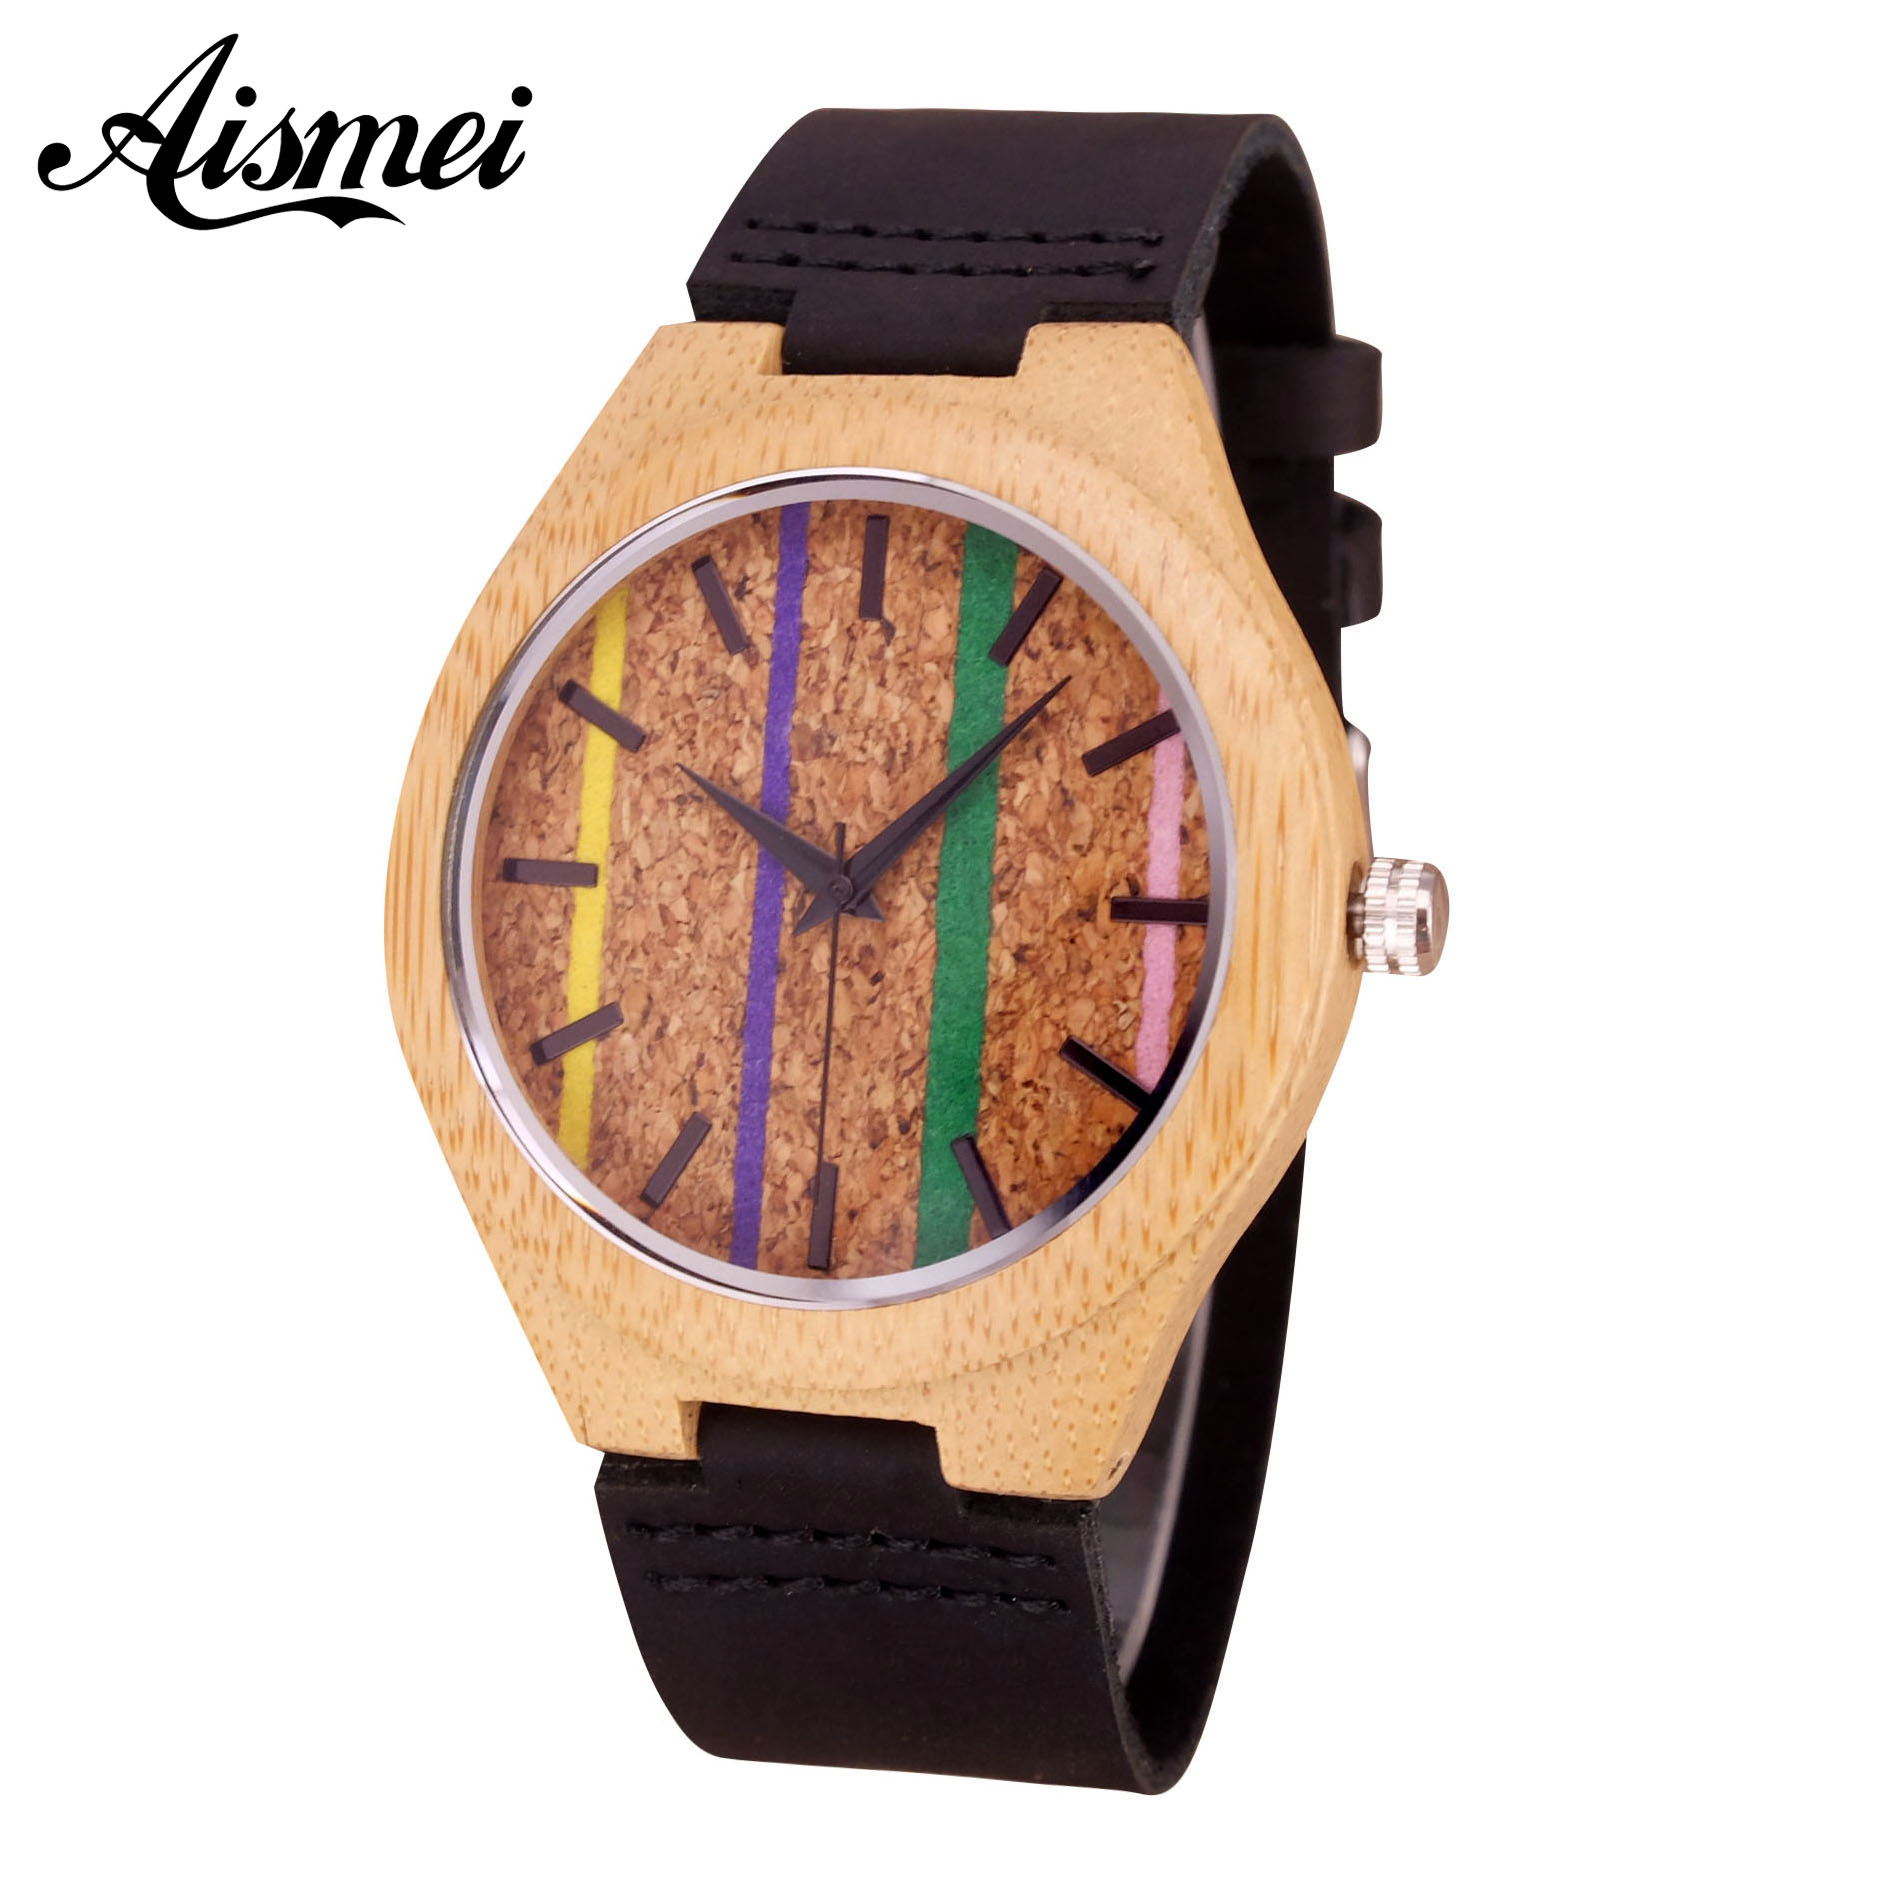 2018 Fashion Colorful Dial Wooden Watch for Men Women Casual Wood Genuine Leather band Quartz Watches Luxury Unisex Gift